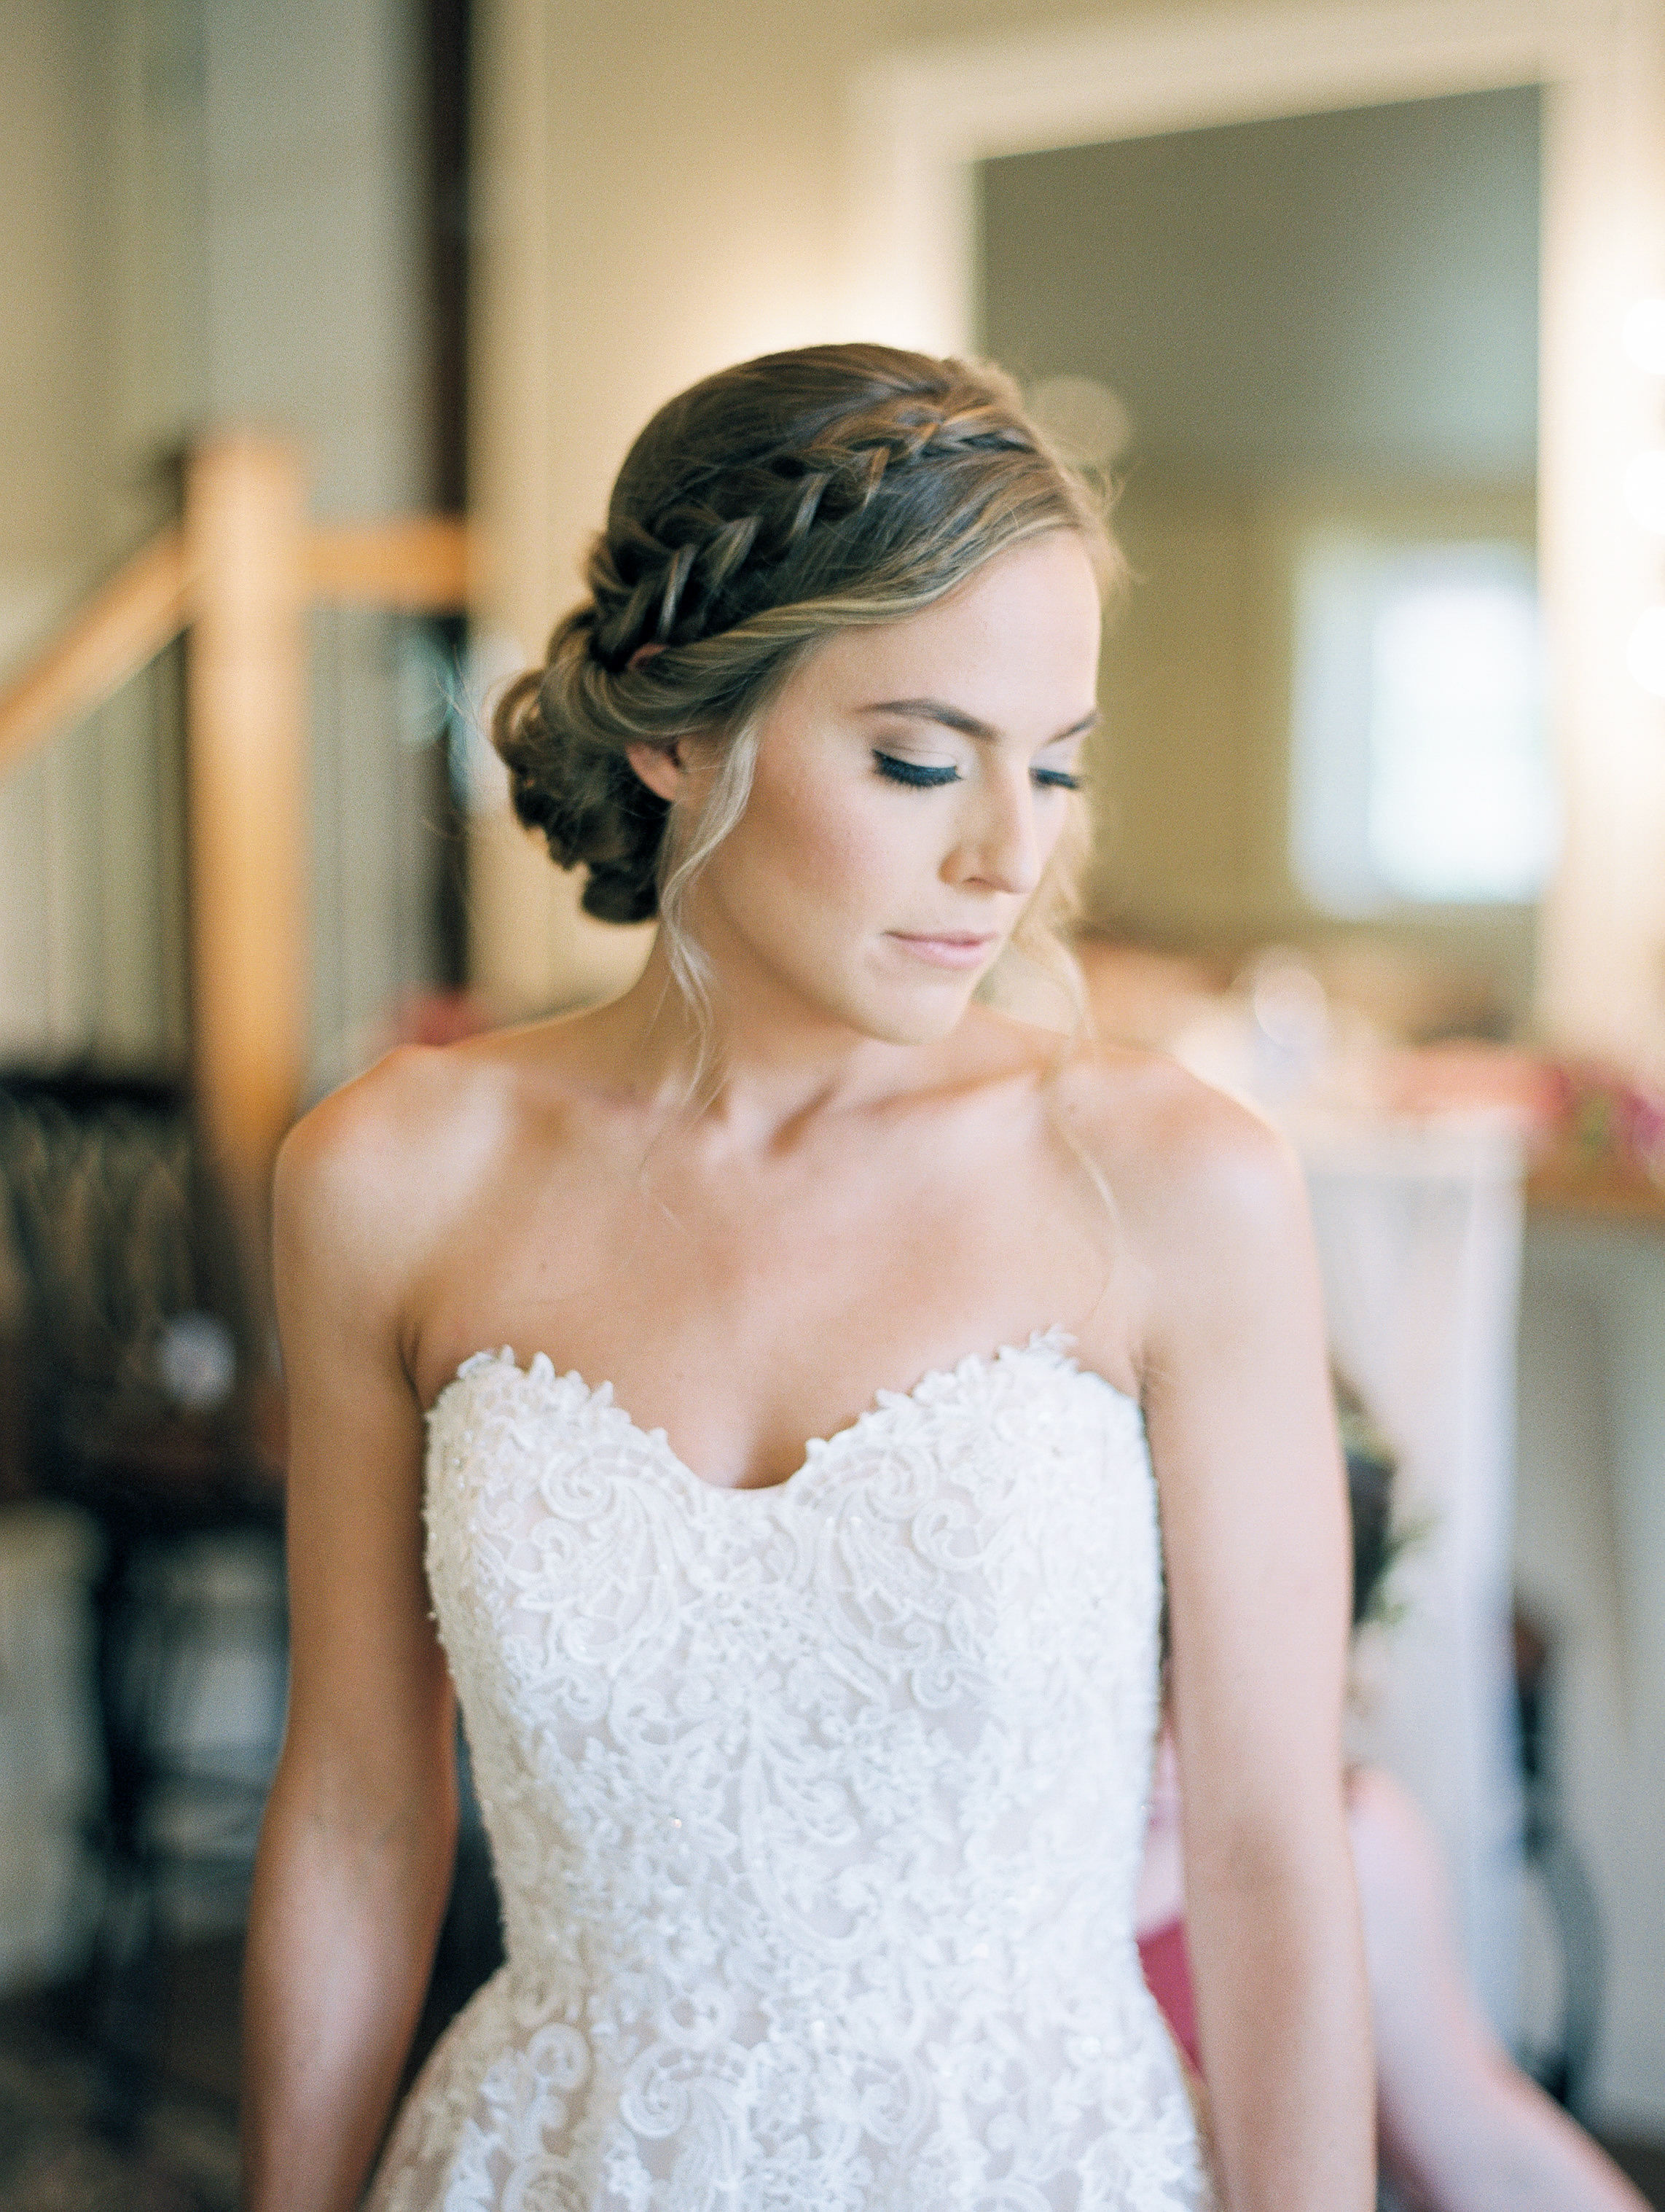 wedding hair and makeup denver co | fade haircut